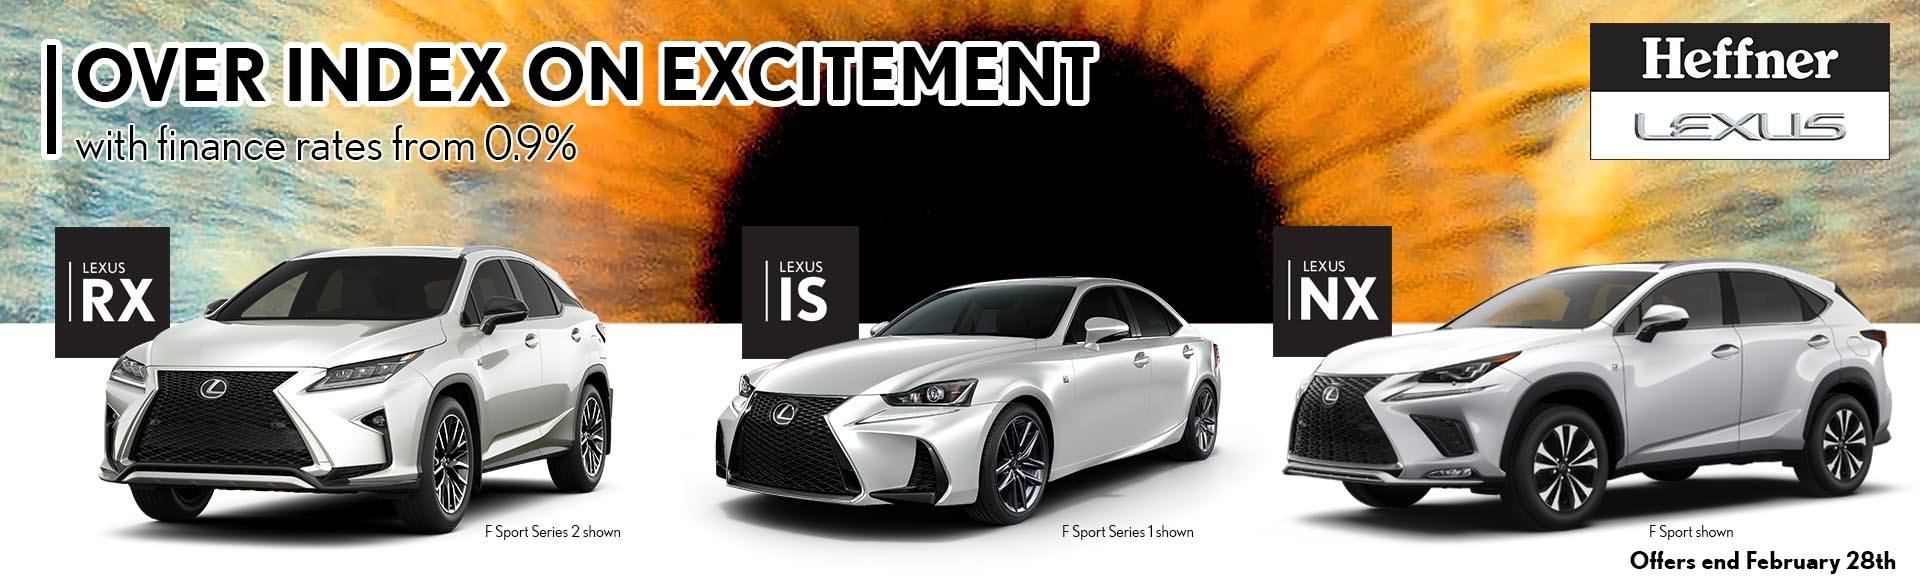 Over Index On Excitement. February Promotion at Heffner Lexus.